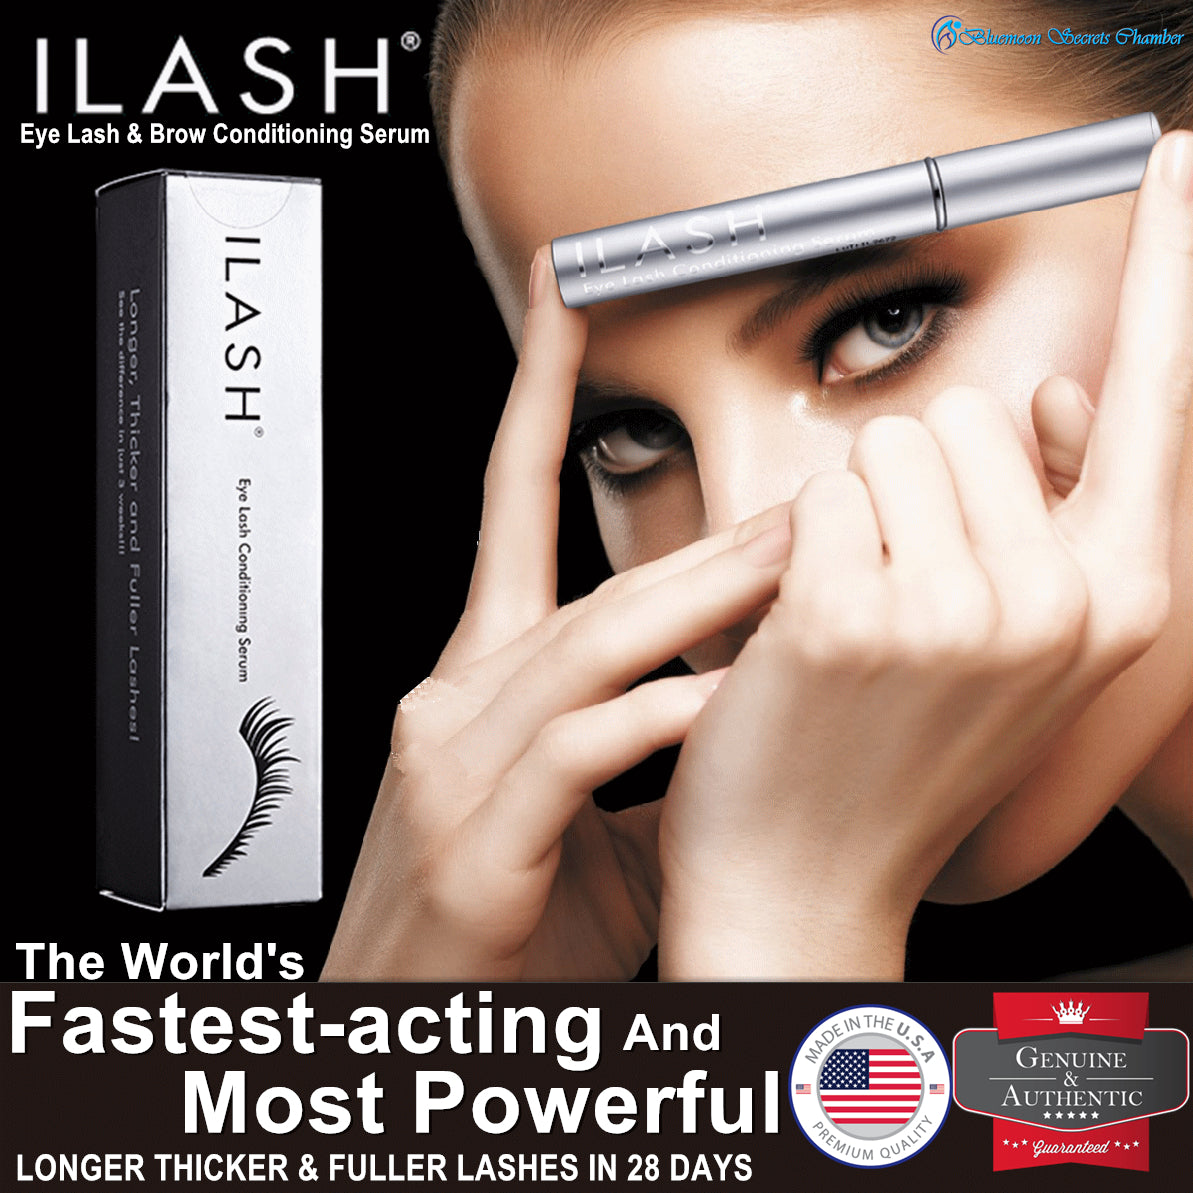 USA ILash | Eye Lash and Brow Conditioning Gel⭐美国神奇眼睫毛增长液 - Bluemoon Secrets Chamber